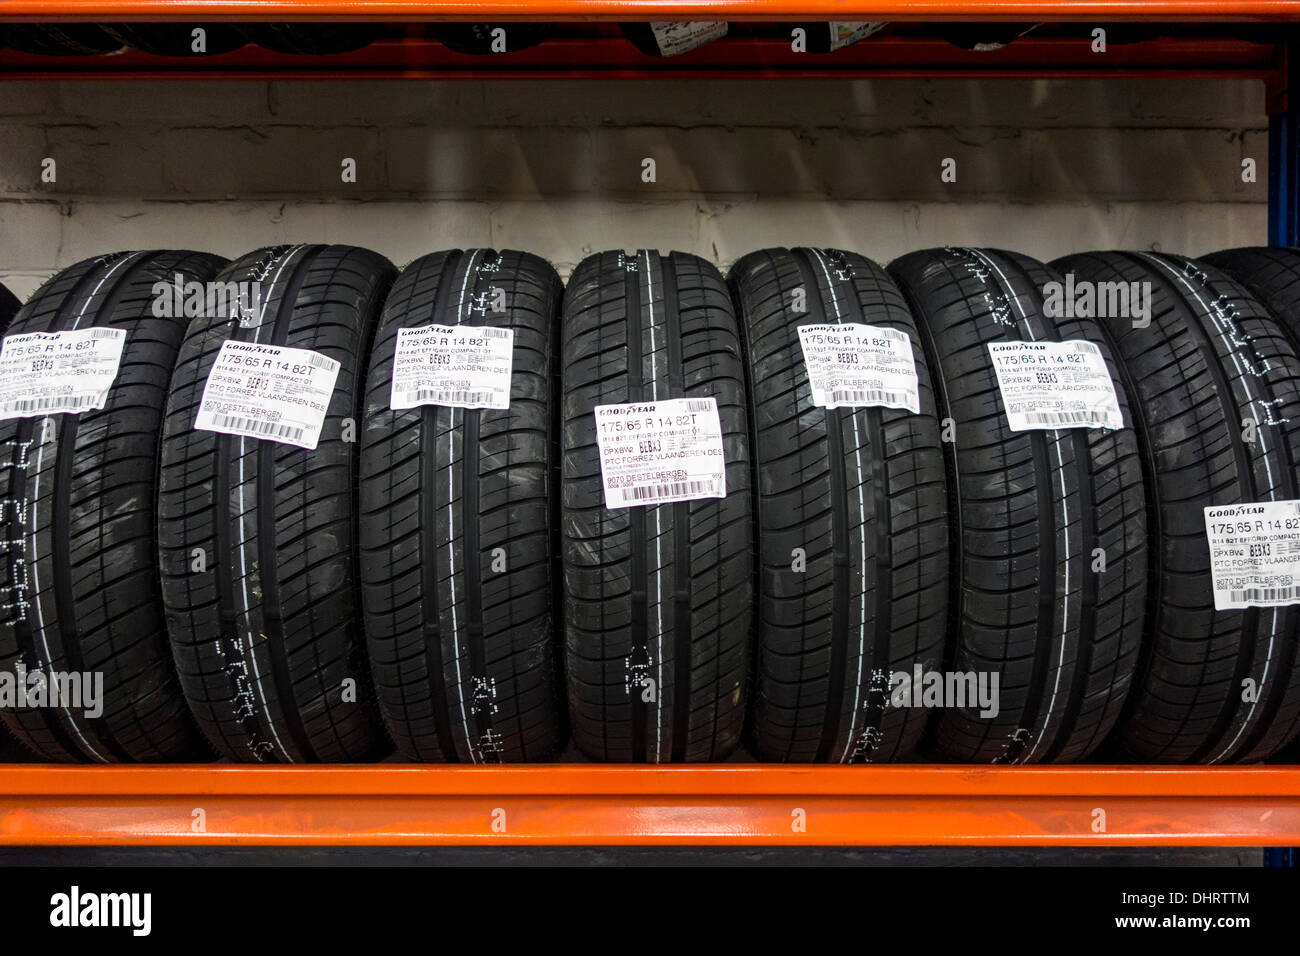 Row of new summer tires for cars stored on shelf in workshop of tire center - Stock Image